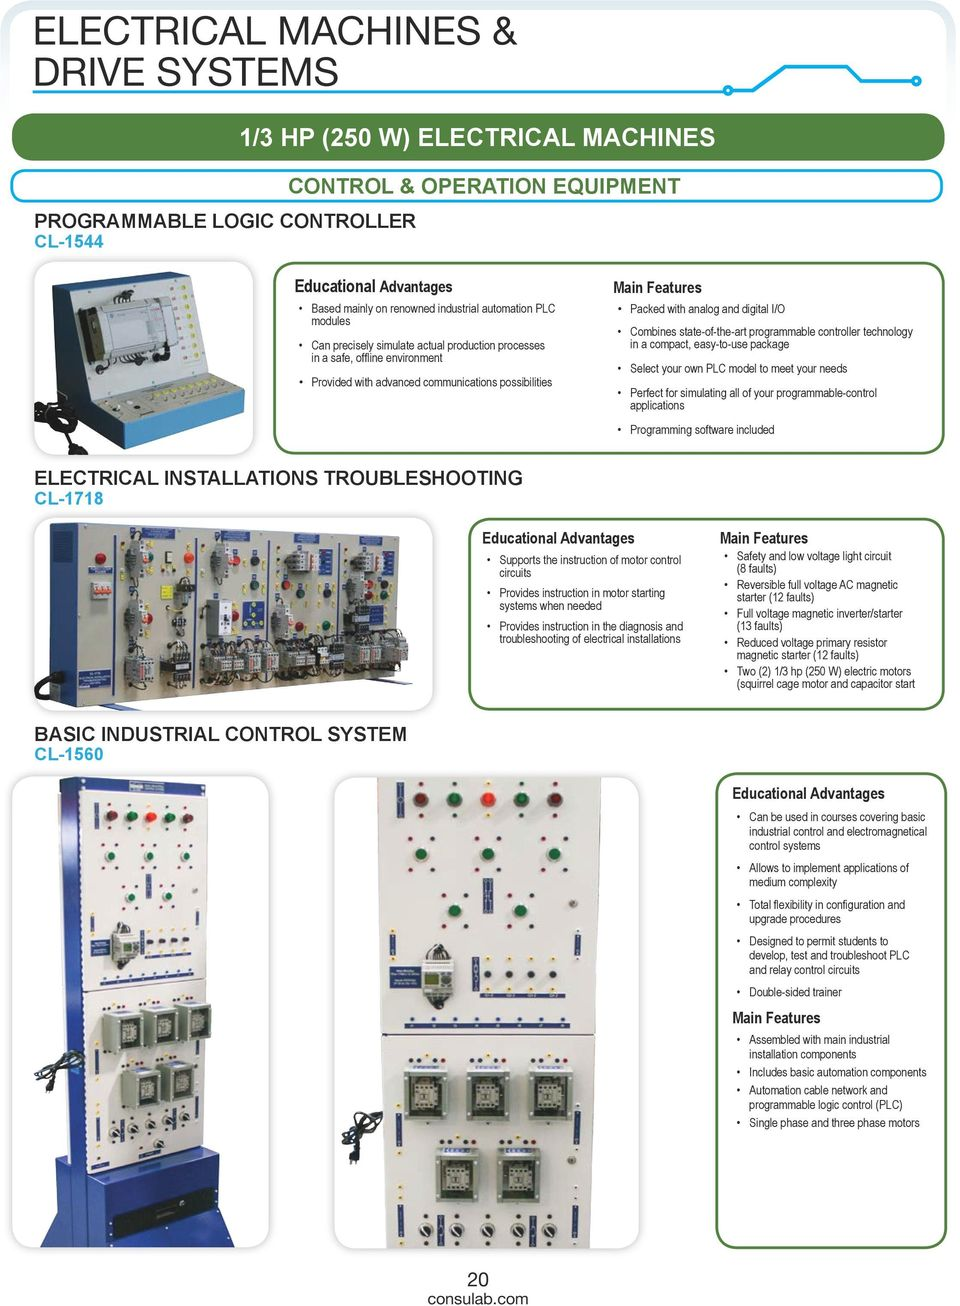 Catalog Electrical Engineering Technology Pdf Troubleshooting The Basic Control Circuits System State Of Art Programmable Controller In A Compact Easy 21 Machines Drive Systems